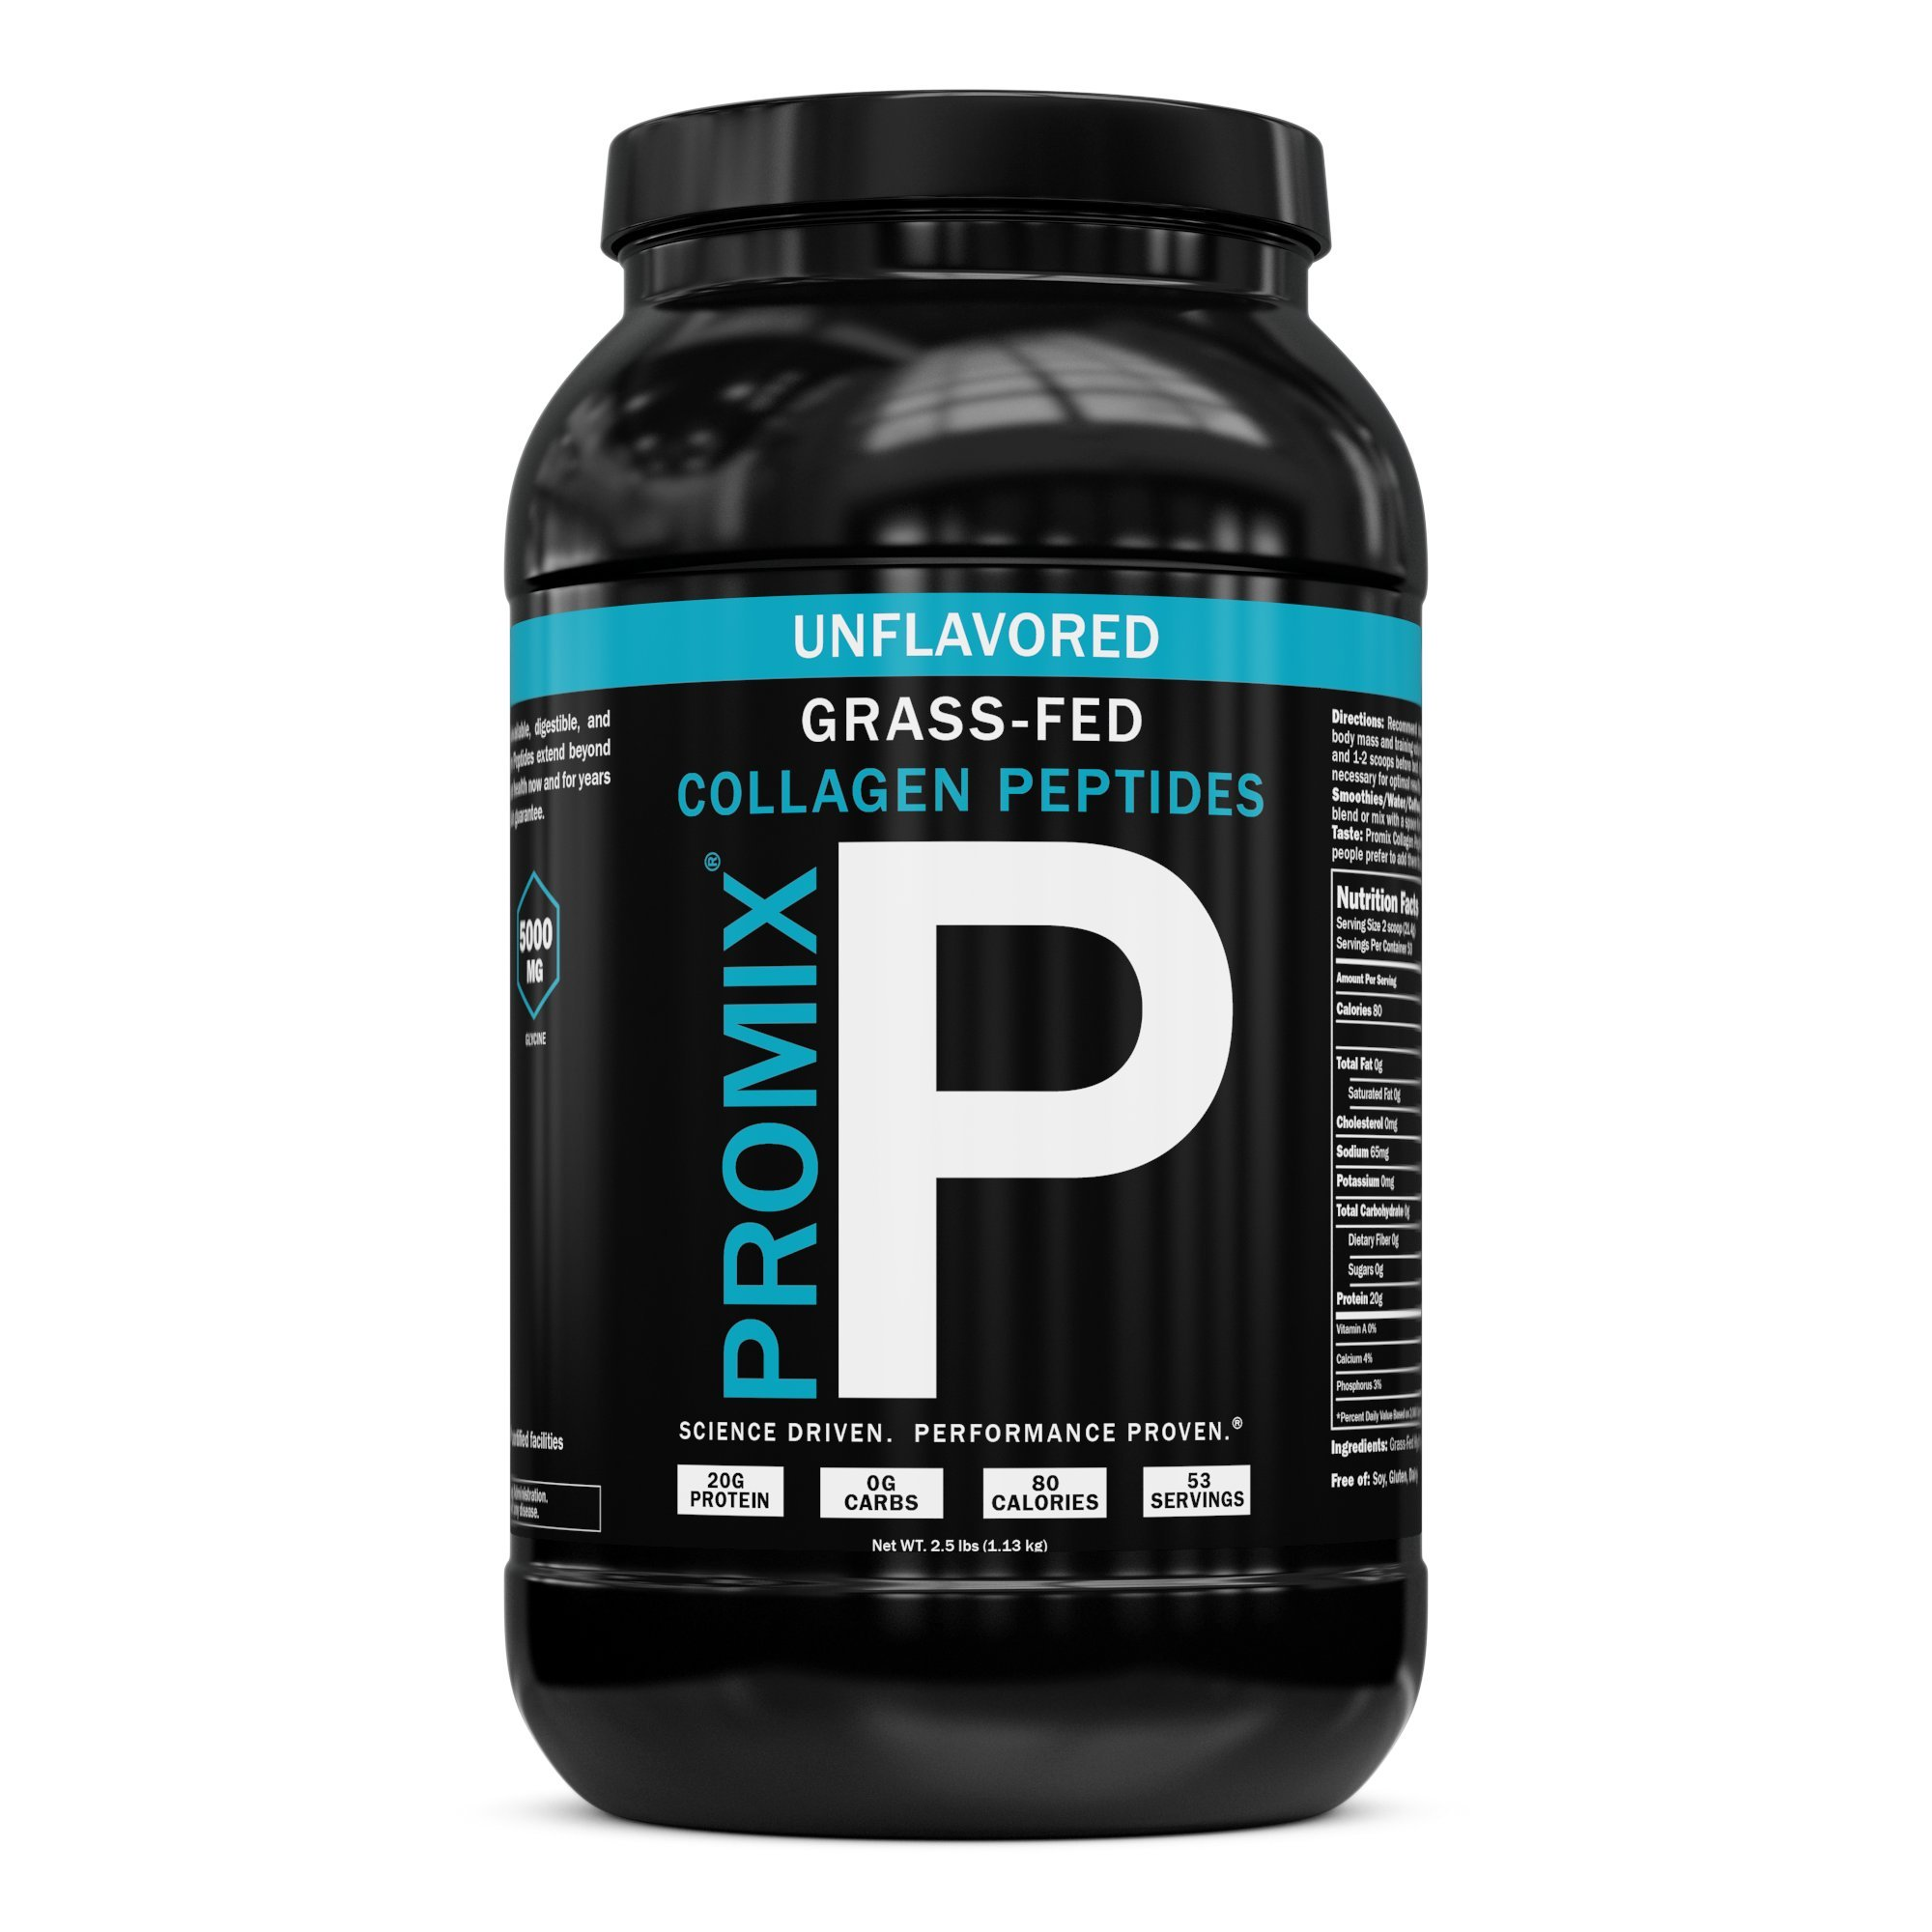 Collagen Peptides Powder 100% Grass-fed Hydrolysate Type I III Hydrolyzed Highest Potency Available. Keto Zero Low Carb Paleo. PROMIX 1 Ingredient Gluten Free USA GMP Certified. Unflavored, BULK 2.5LB